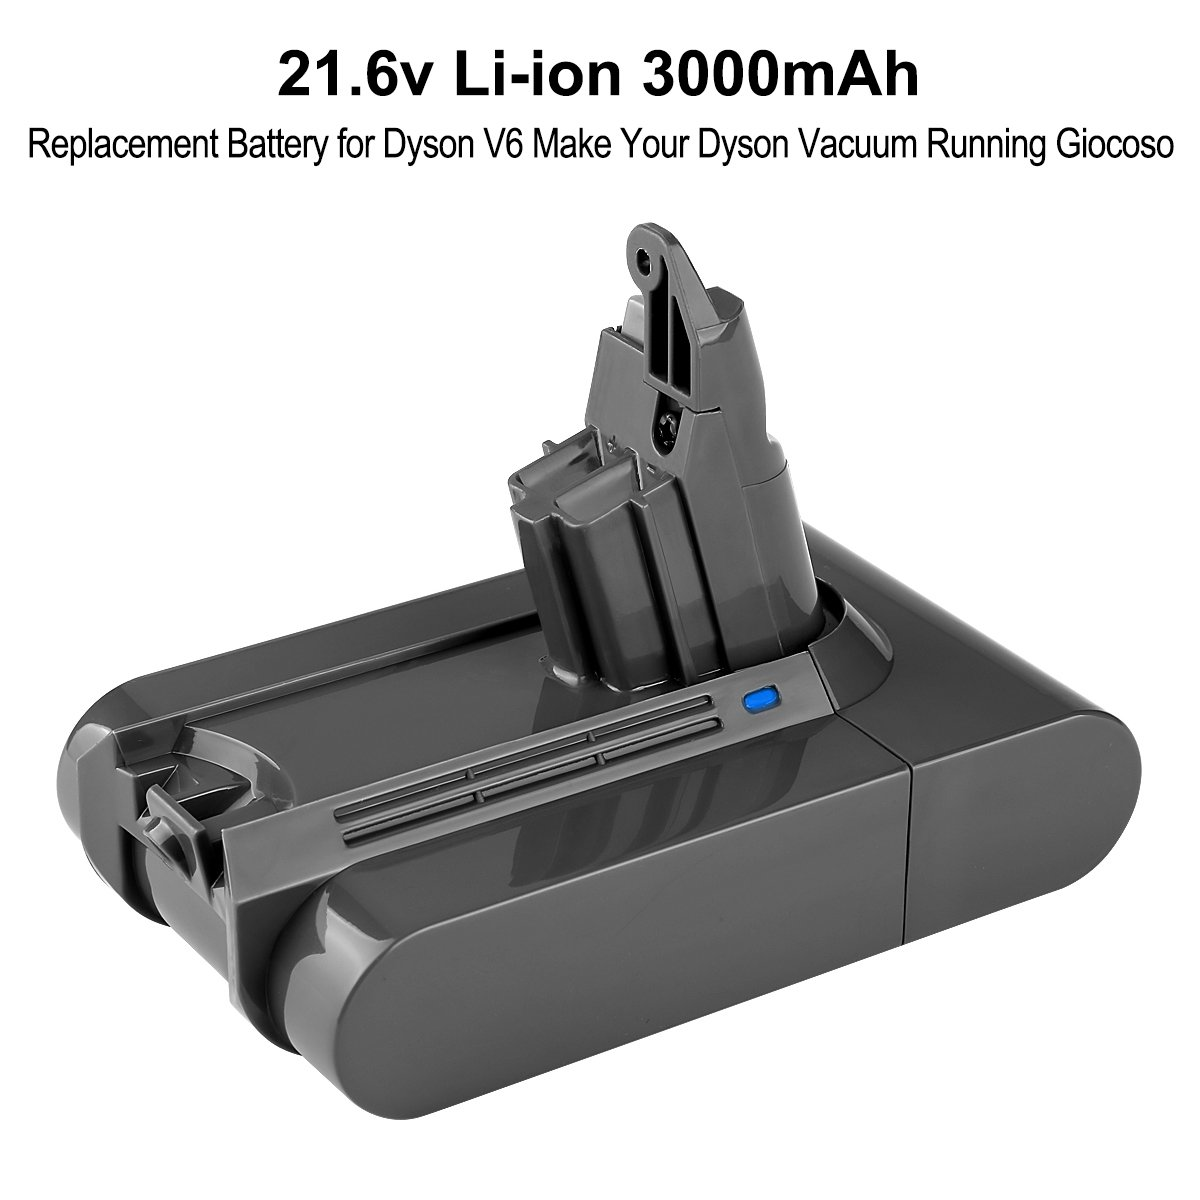 Energup Upgraded 21.6V 3000mAh Li-ion Battery for Dyson V6 595 650 770 880 DC58 DC59 DC61 DC62 Animal Handheld Replacement Battery(with a Free Dyson Filter Replacements) by Energup (Image #2)